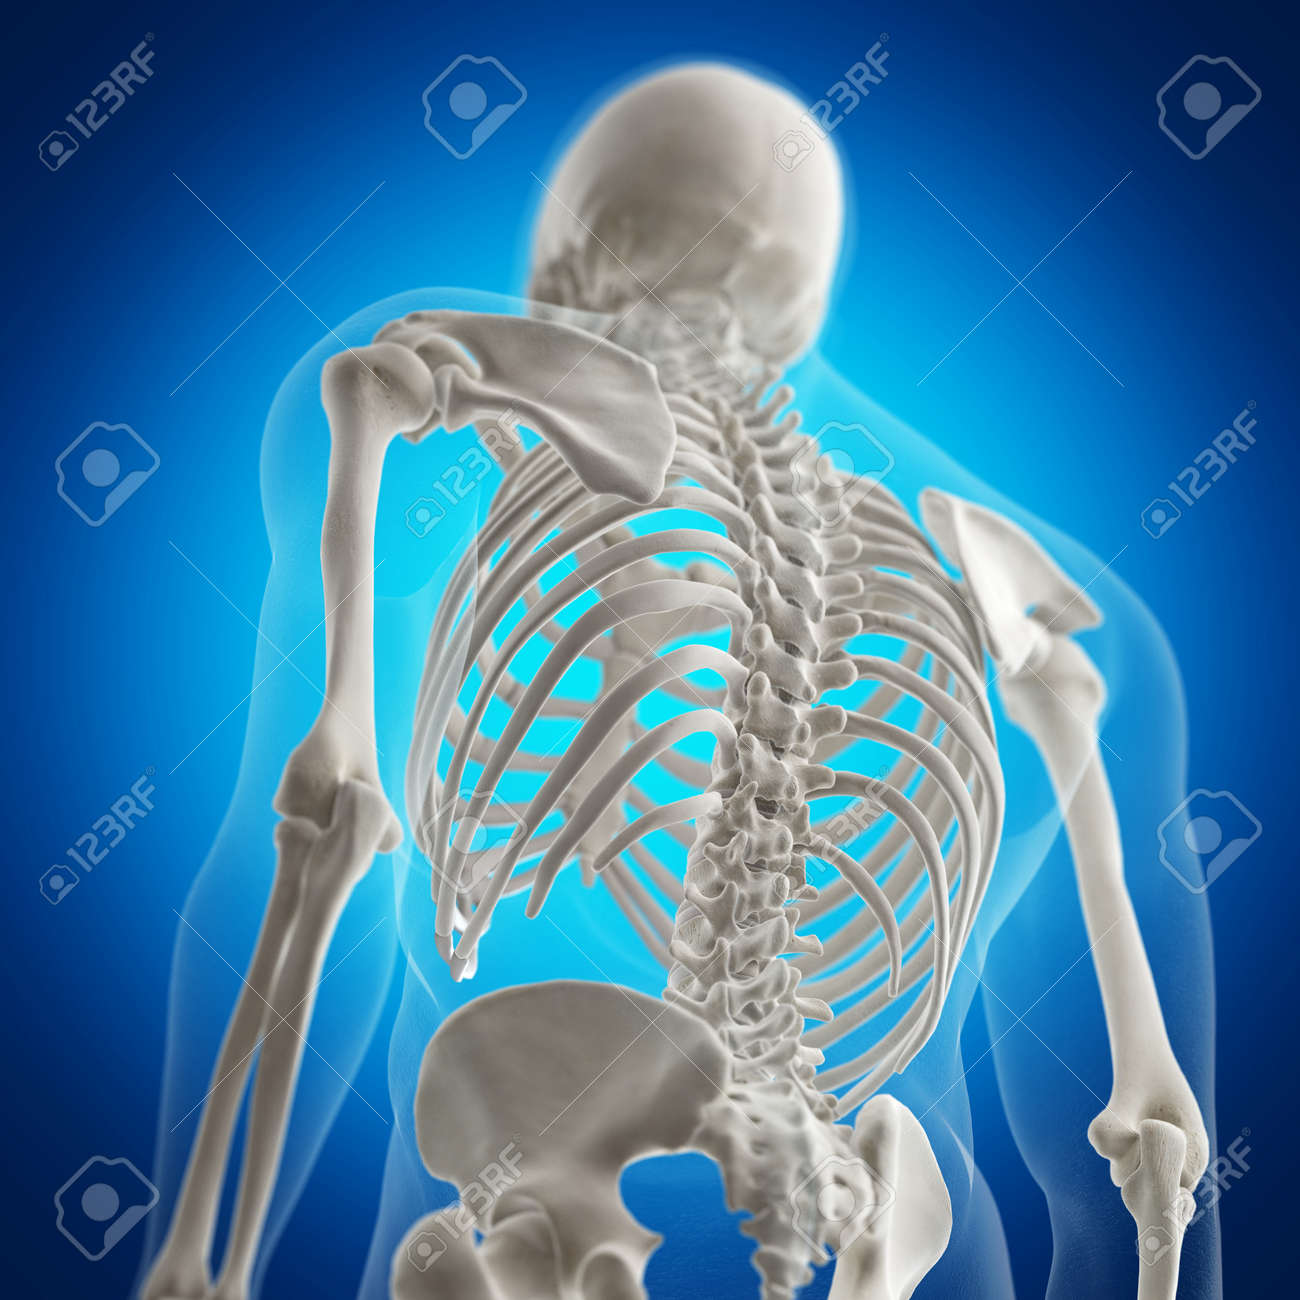 3d Rendered Medically Accurate Illustration Of The Skeletal Back